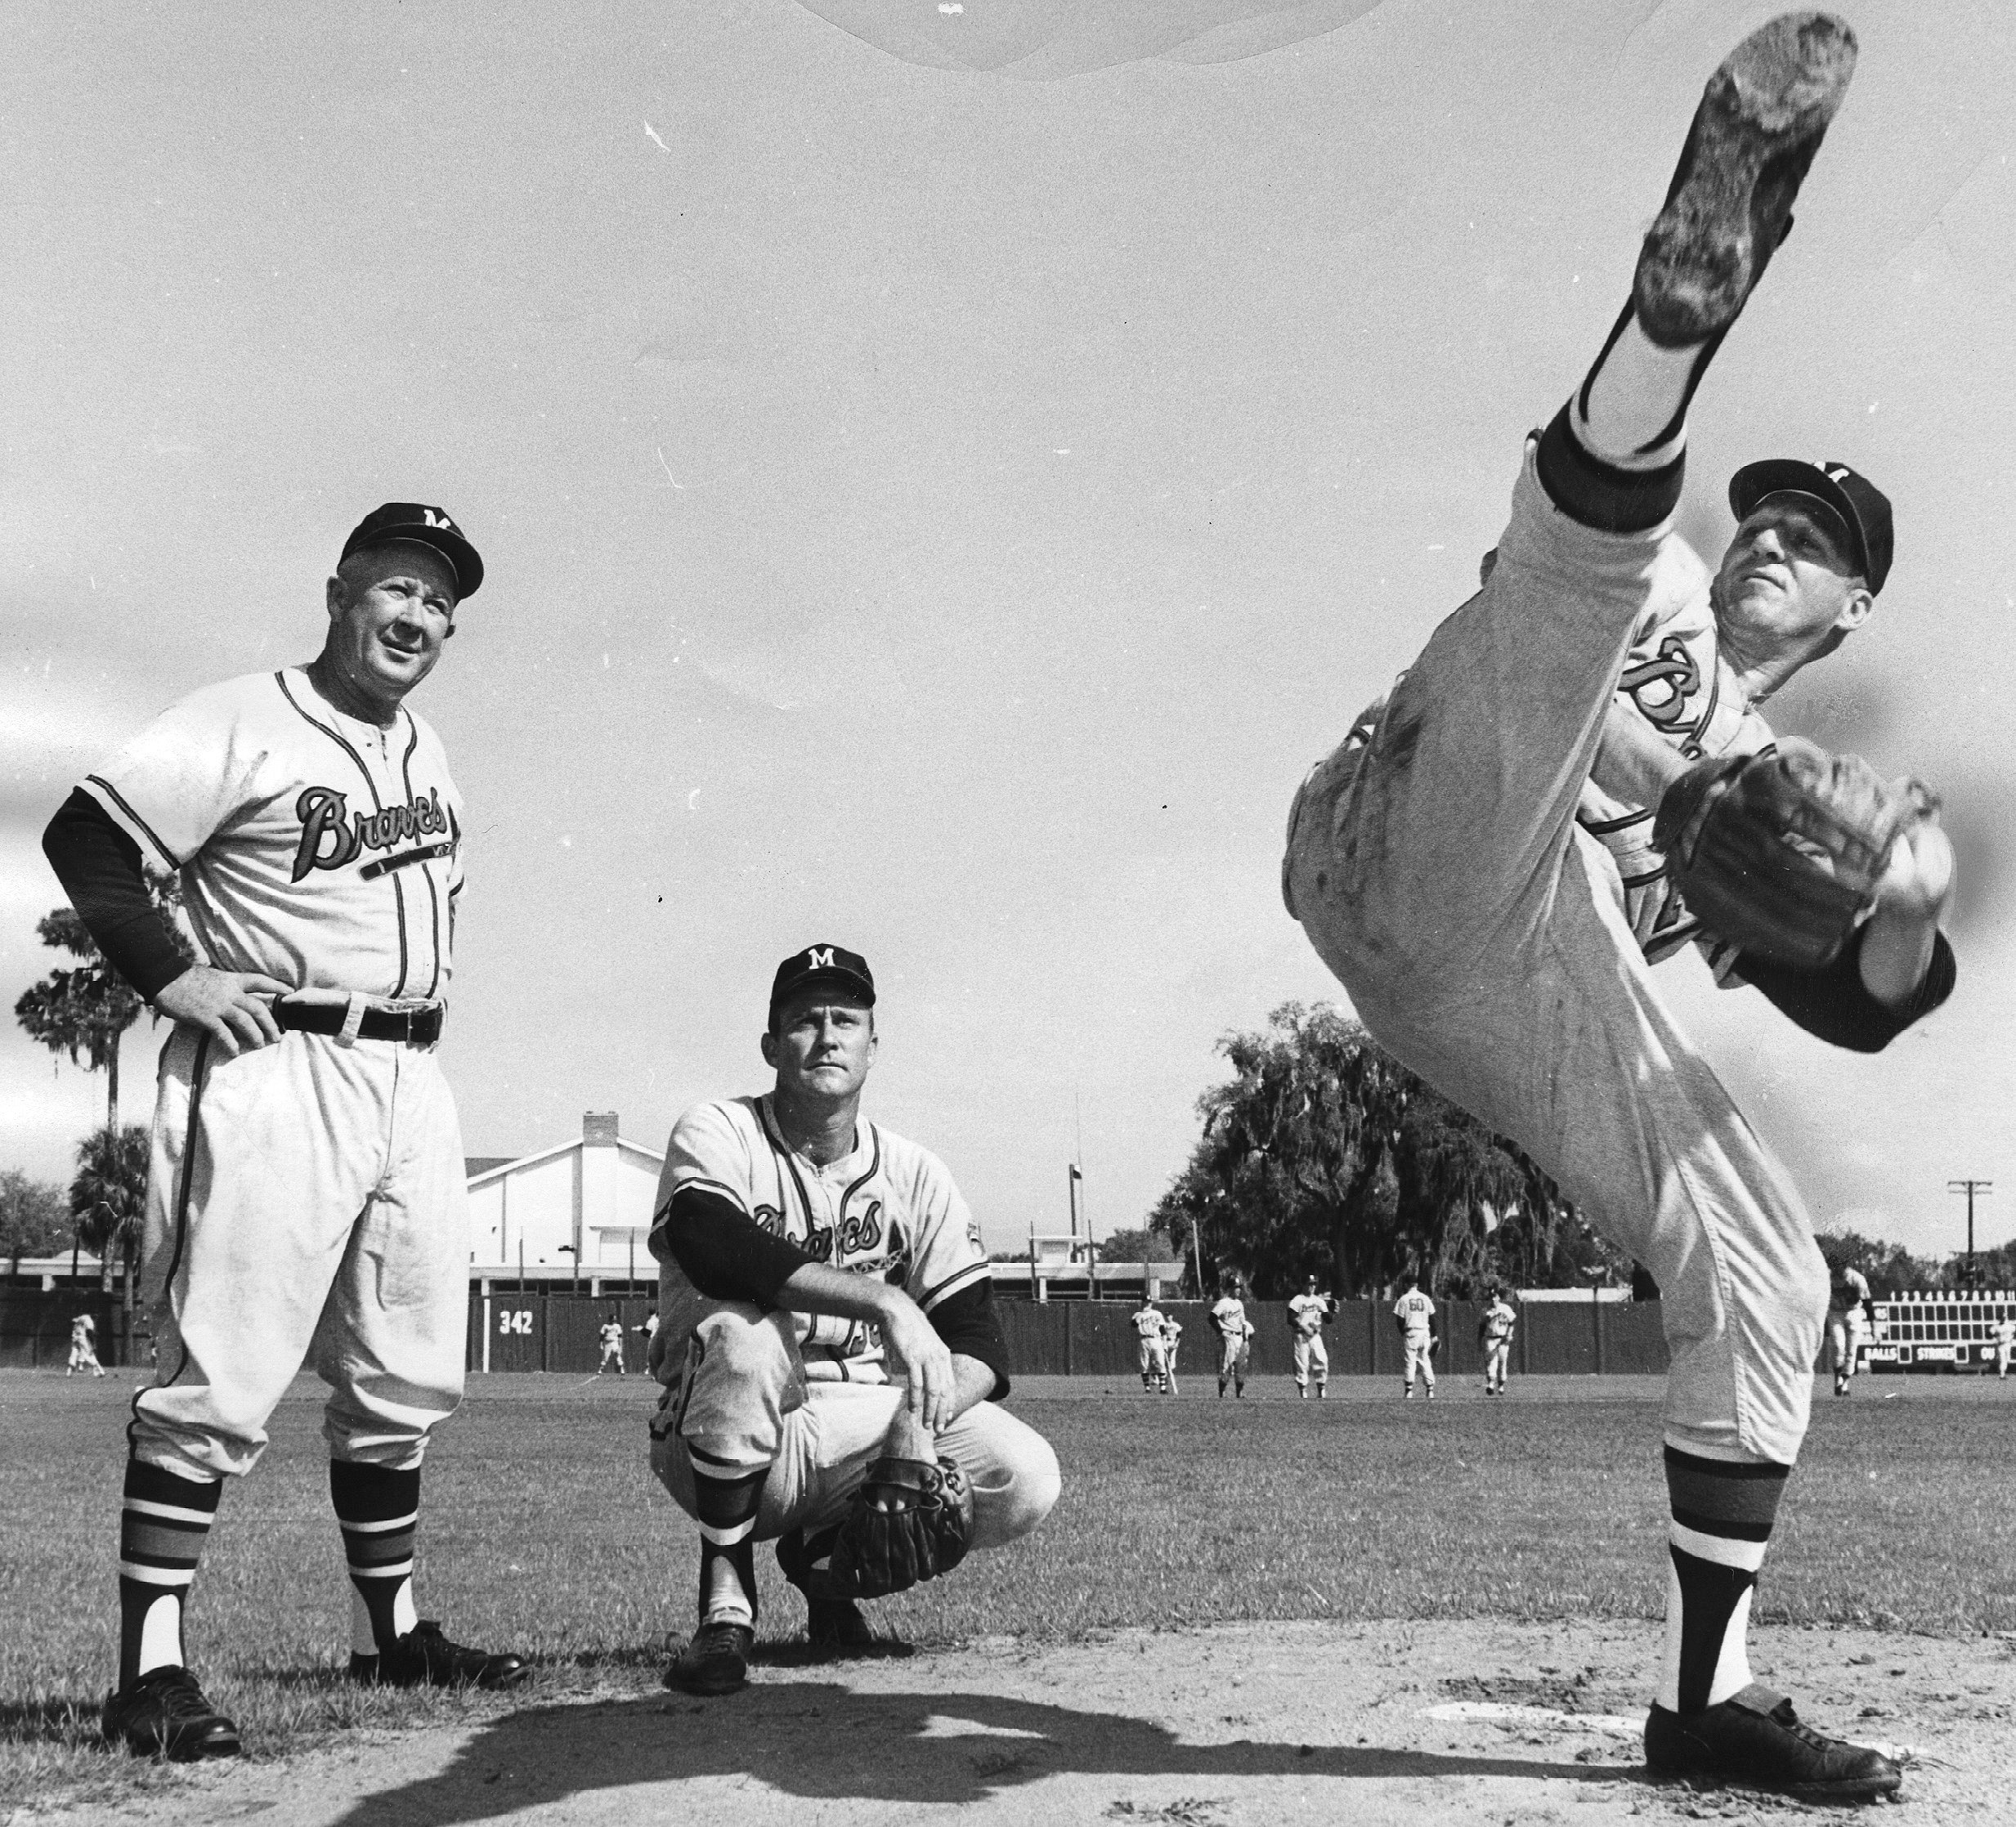 A towering leg kick characterized Warren Spahn's pitching motion and challenged writers to find the words to describe it.